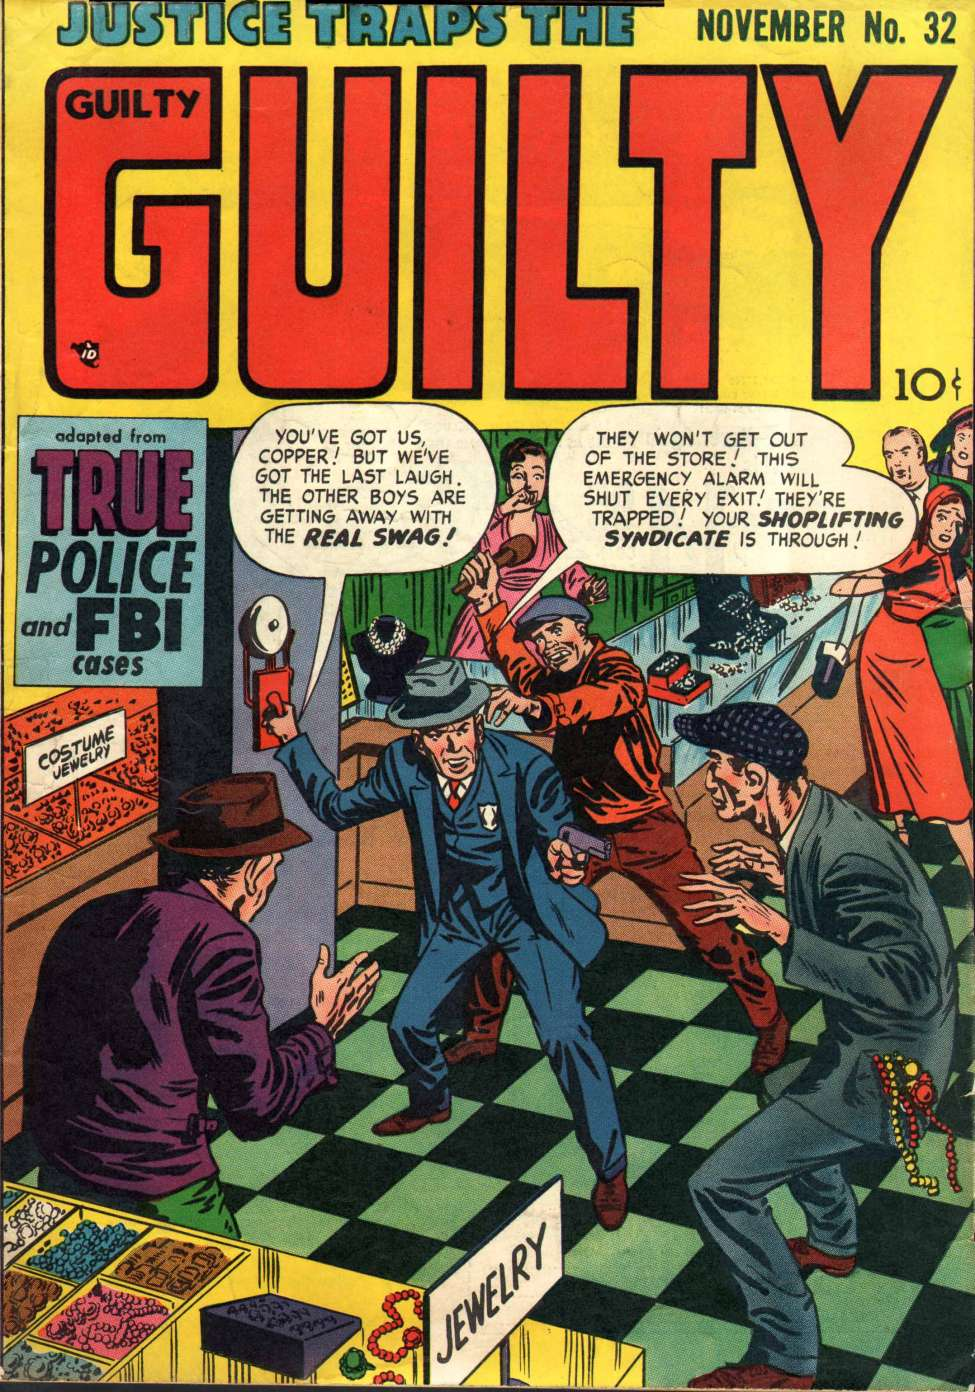 Comic Book Cover For Justice Traps the Guilty v5 2 (32)